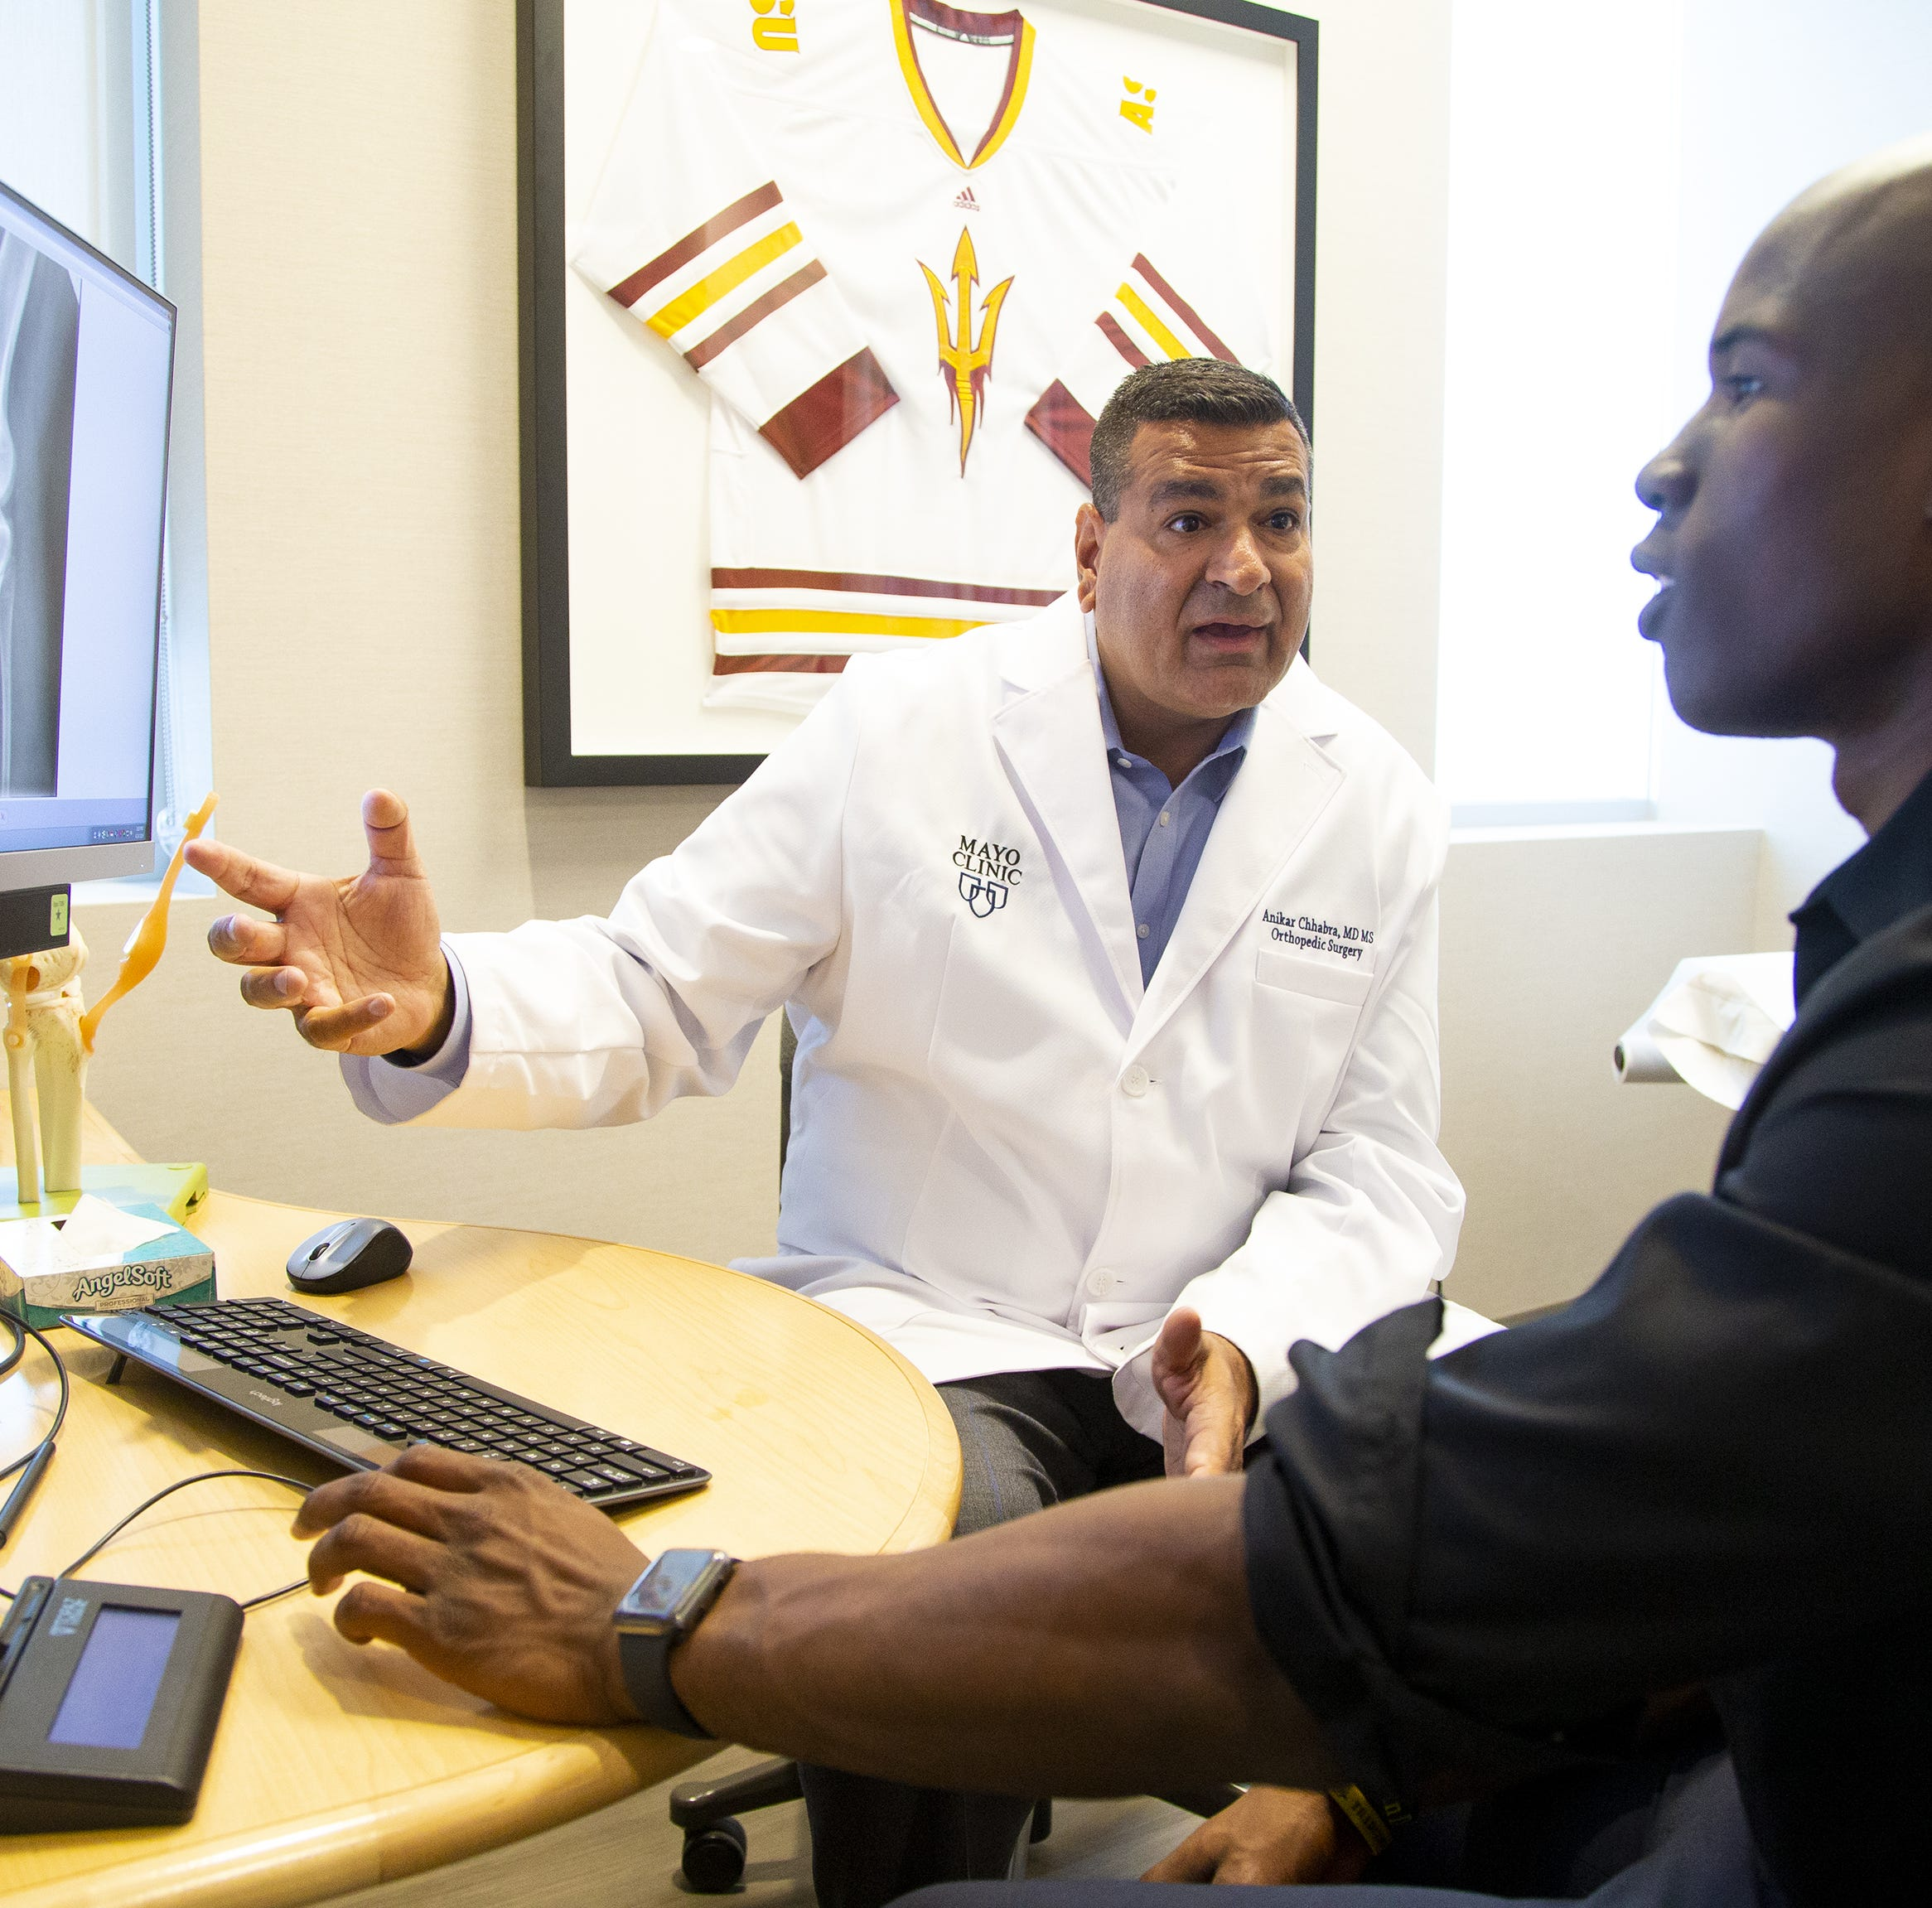 ASU's Kyle Williams balancing athletics and pursuing a career in medicine